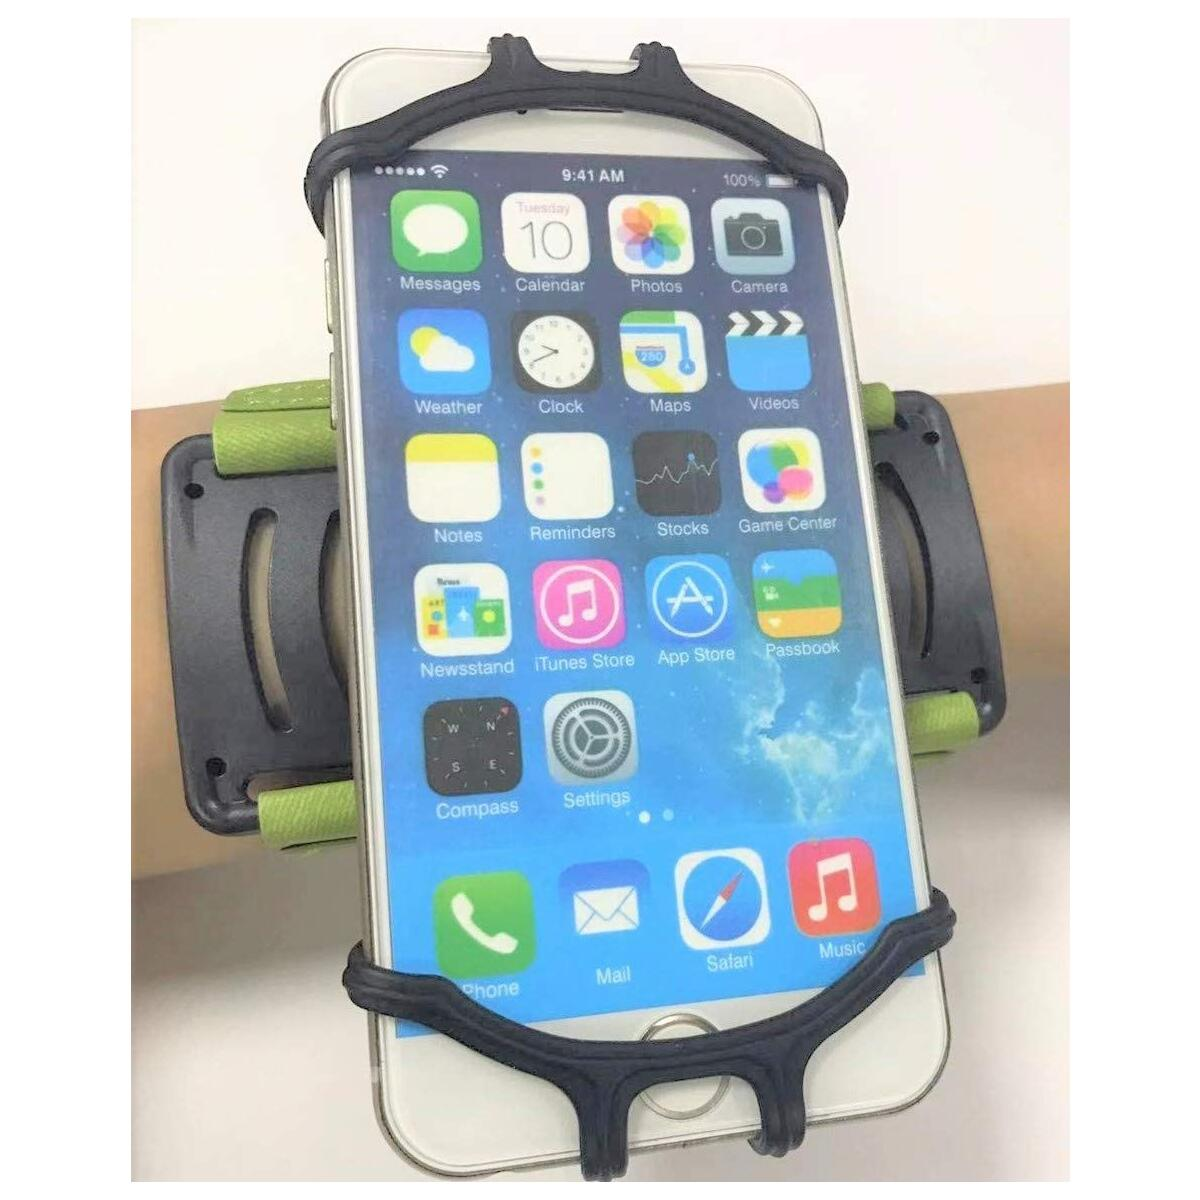 ACHORO 360 Degree Rotating Armband - Compatible with iPhone, Samsung - Premium Quality Smartphone Arm Holder (Green)